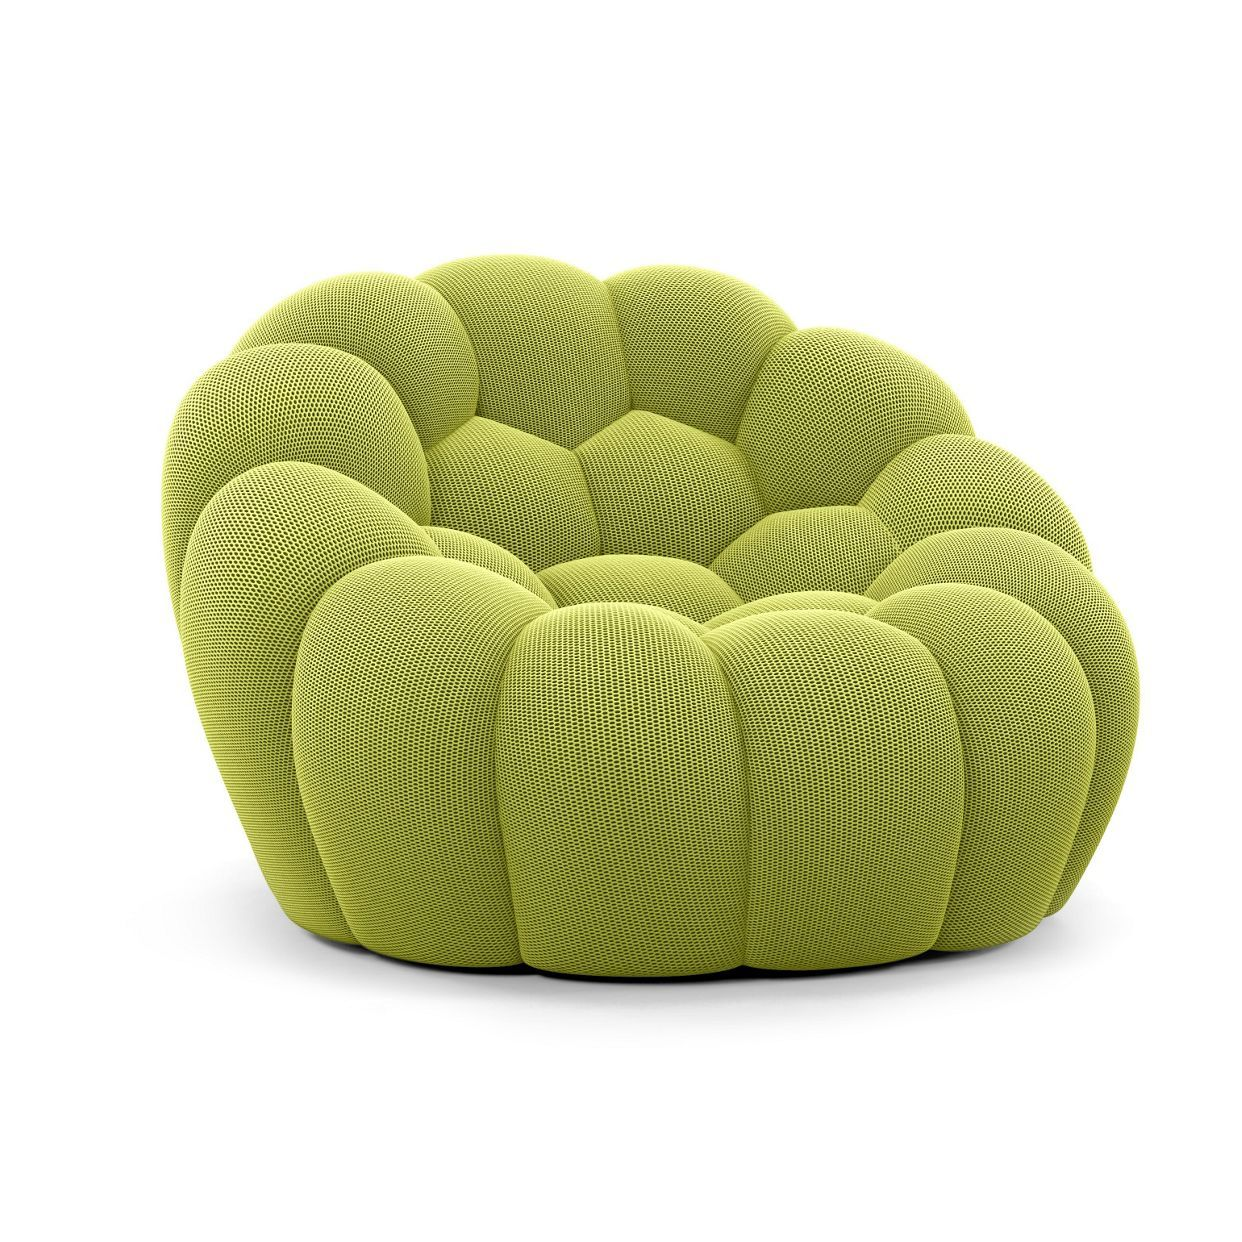 Marvelous Discover Our Product BUBBLE ARMCHAIR, As Well As Other Products From The  Family